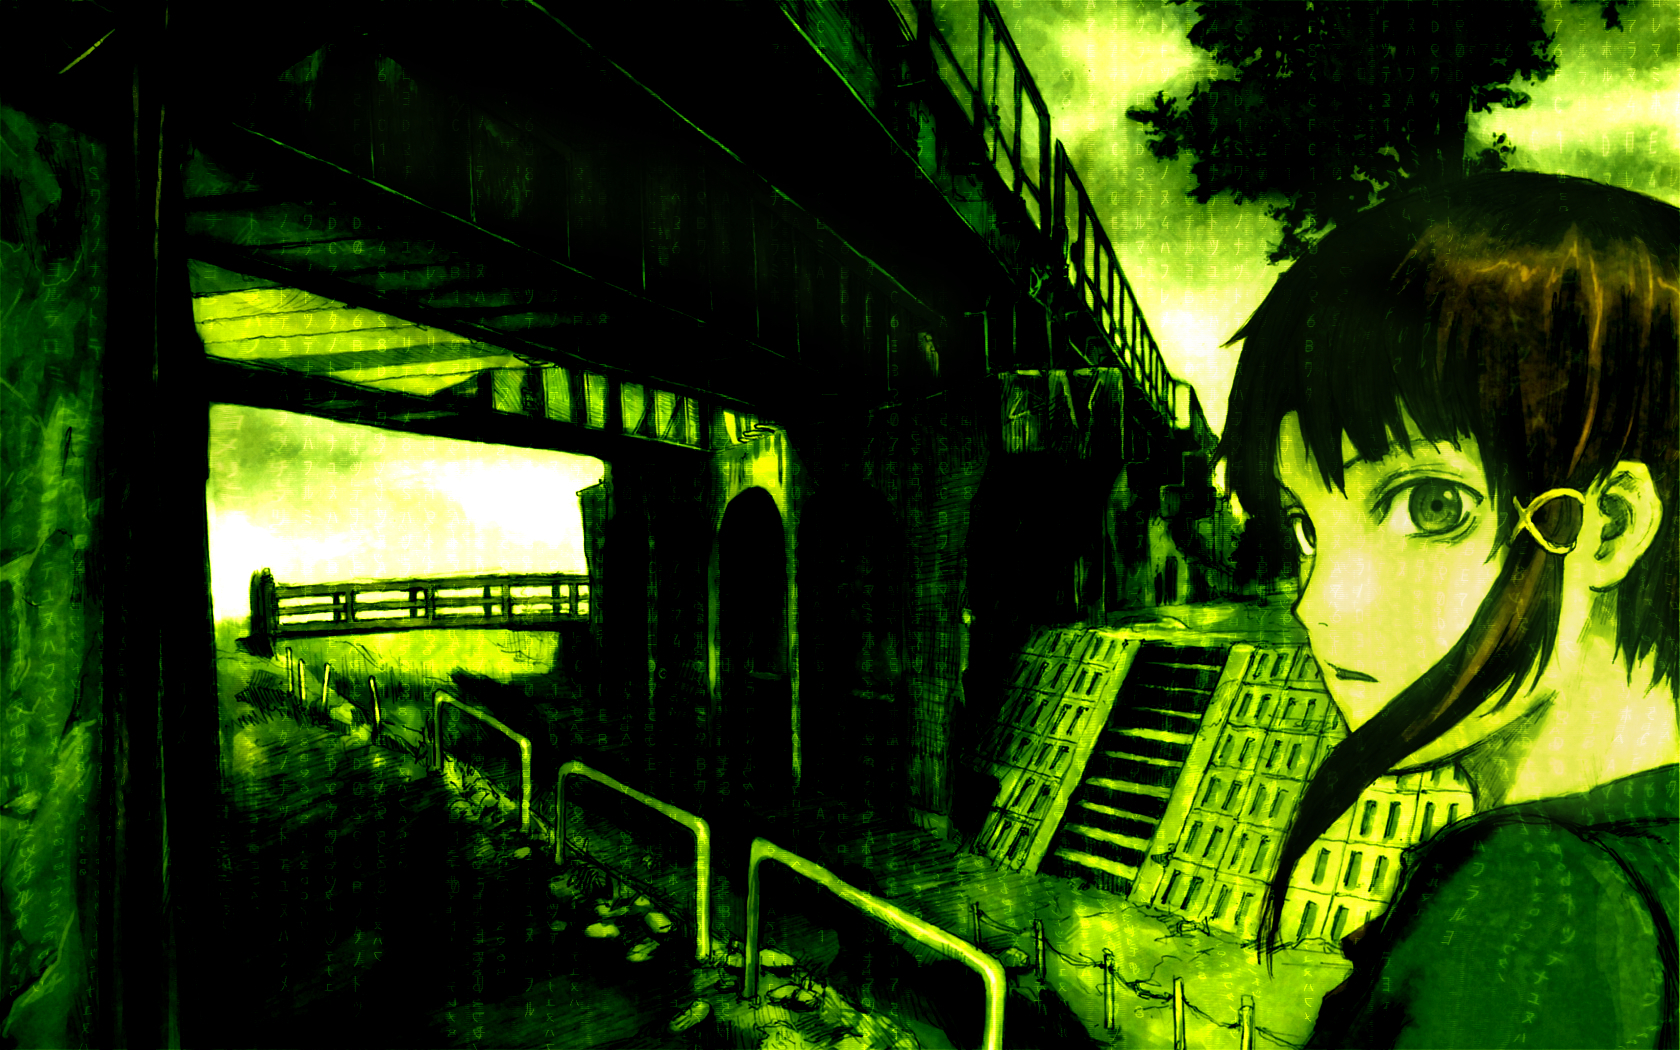 serial experiments lain Anime HD Wallpaper